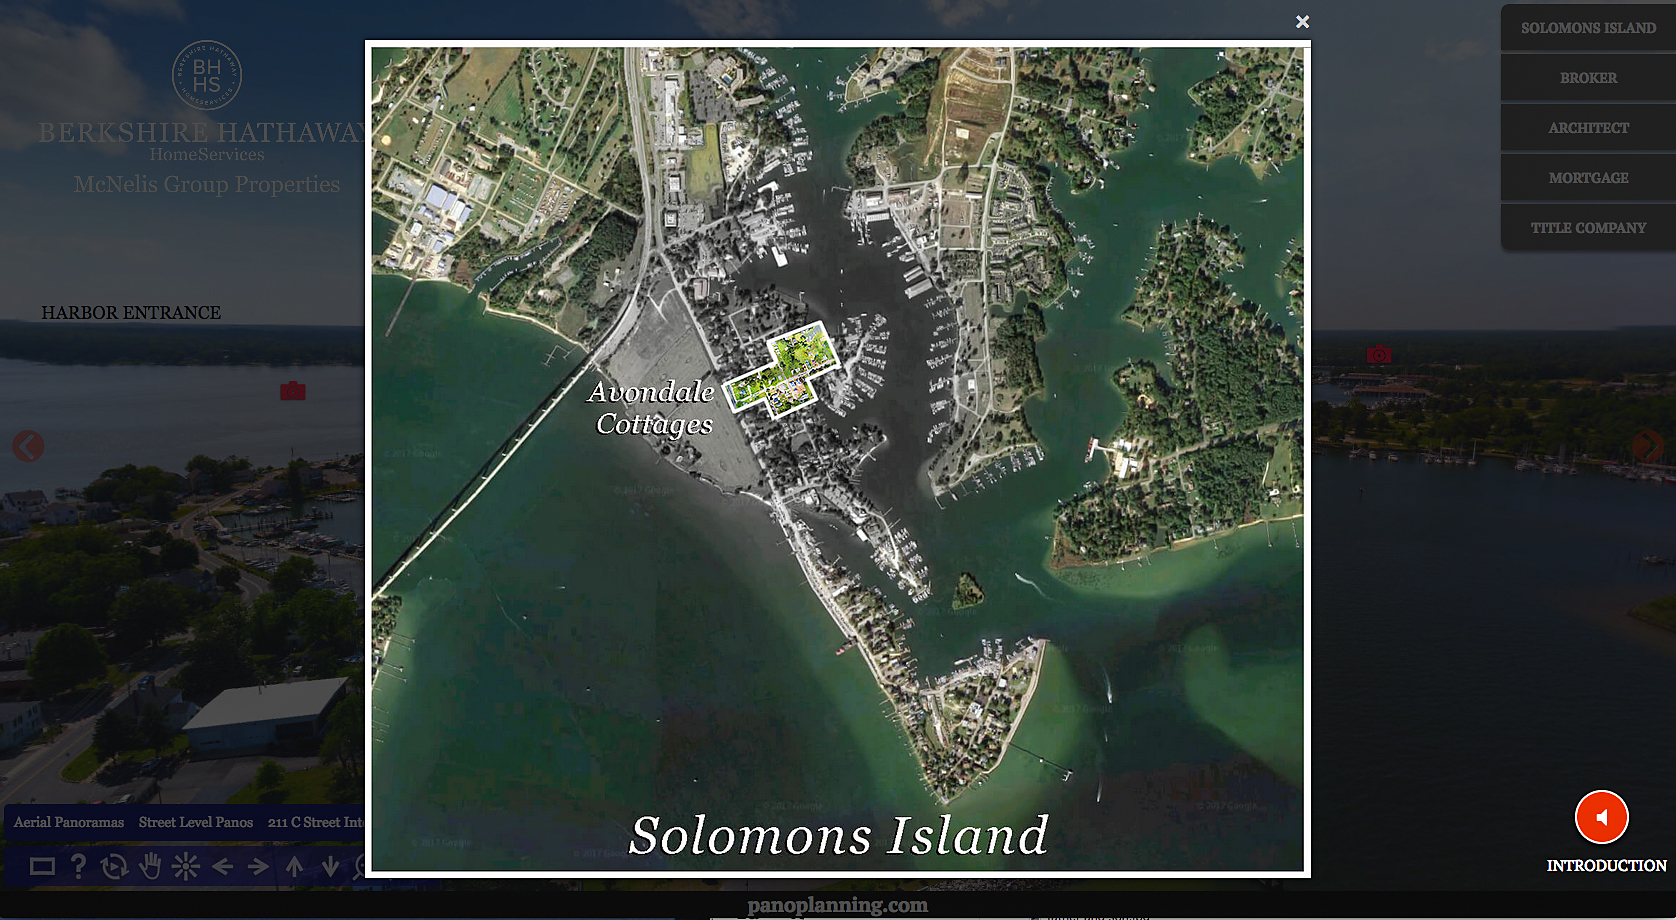 Orientation Map of Solomons Island and Avondale Cottages development.